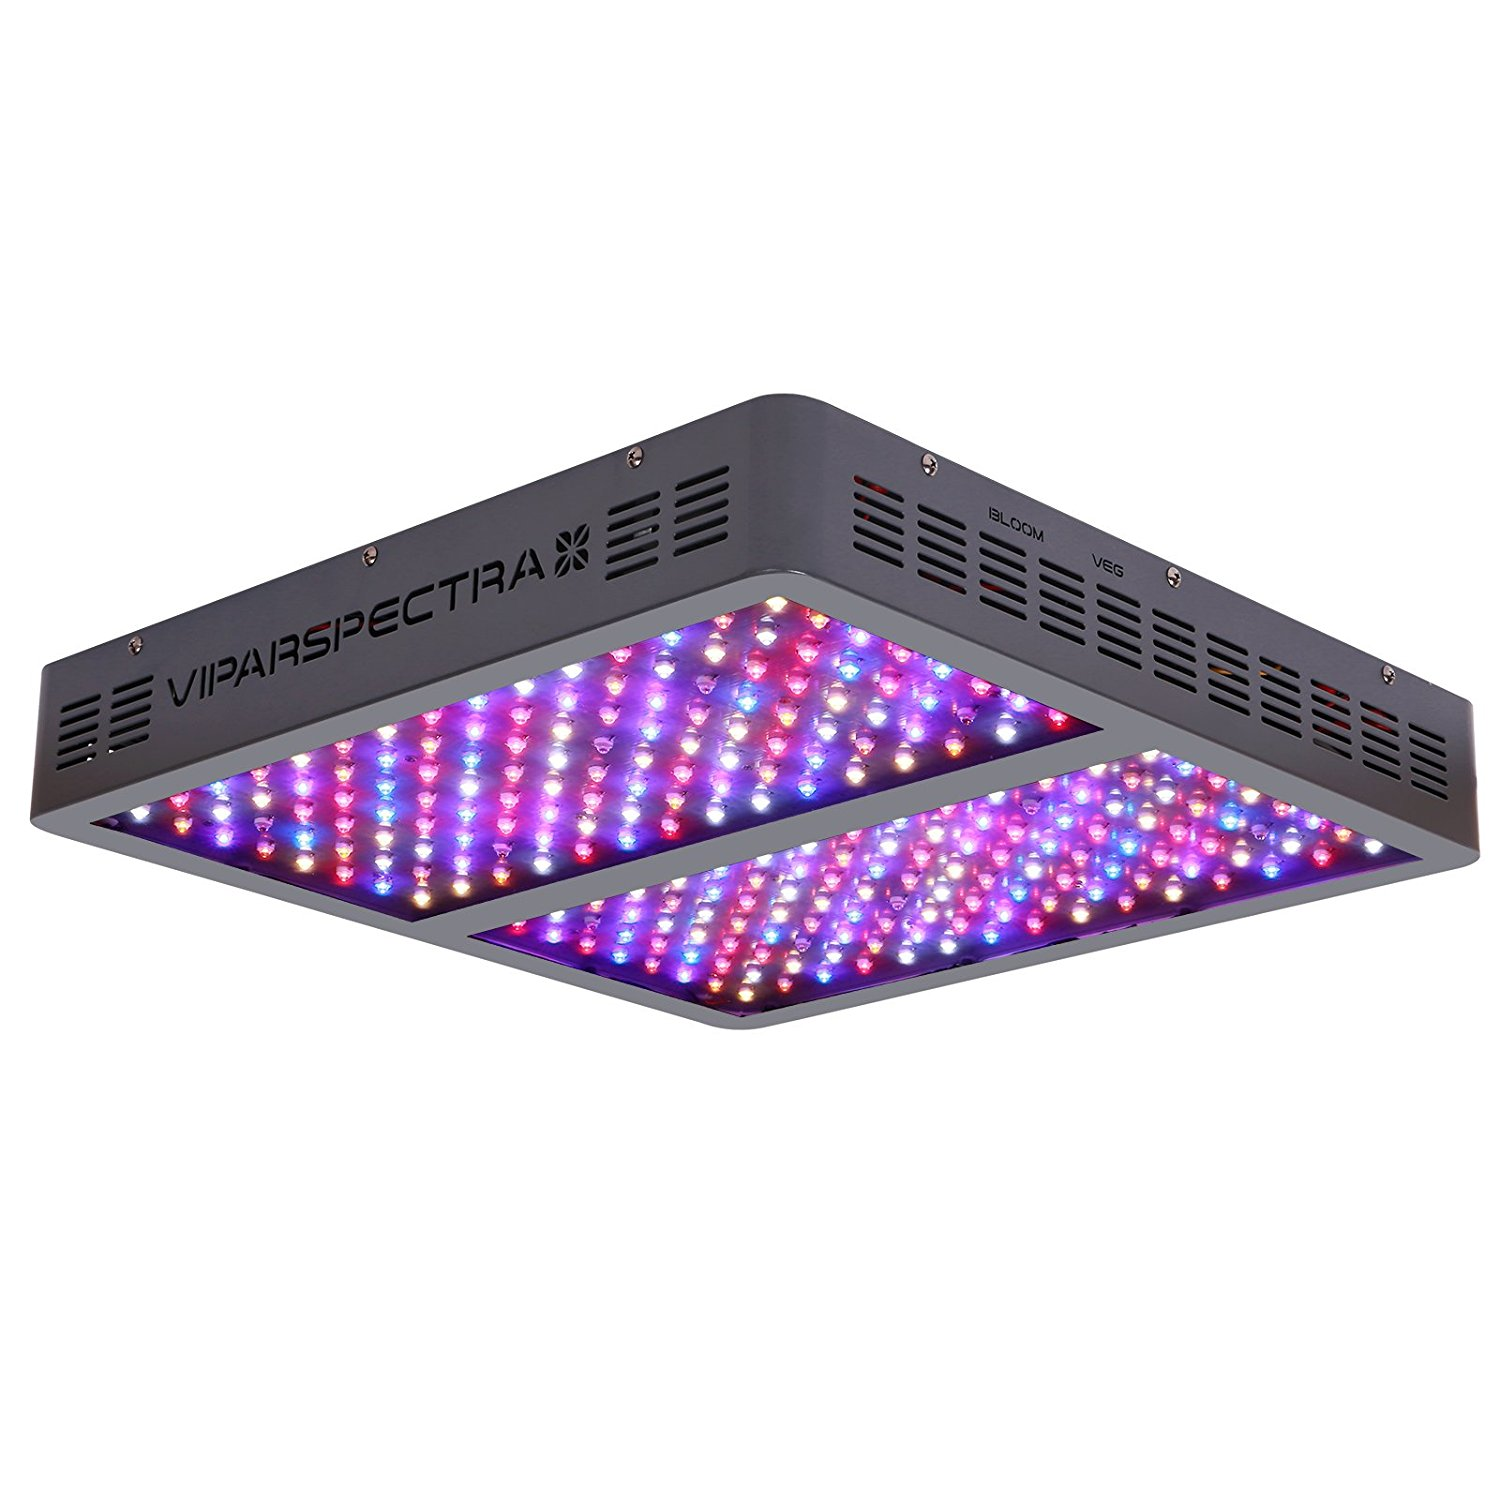 Viparspectra 1200w Led Grow Light Review A Powerhouse Or